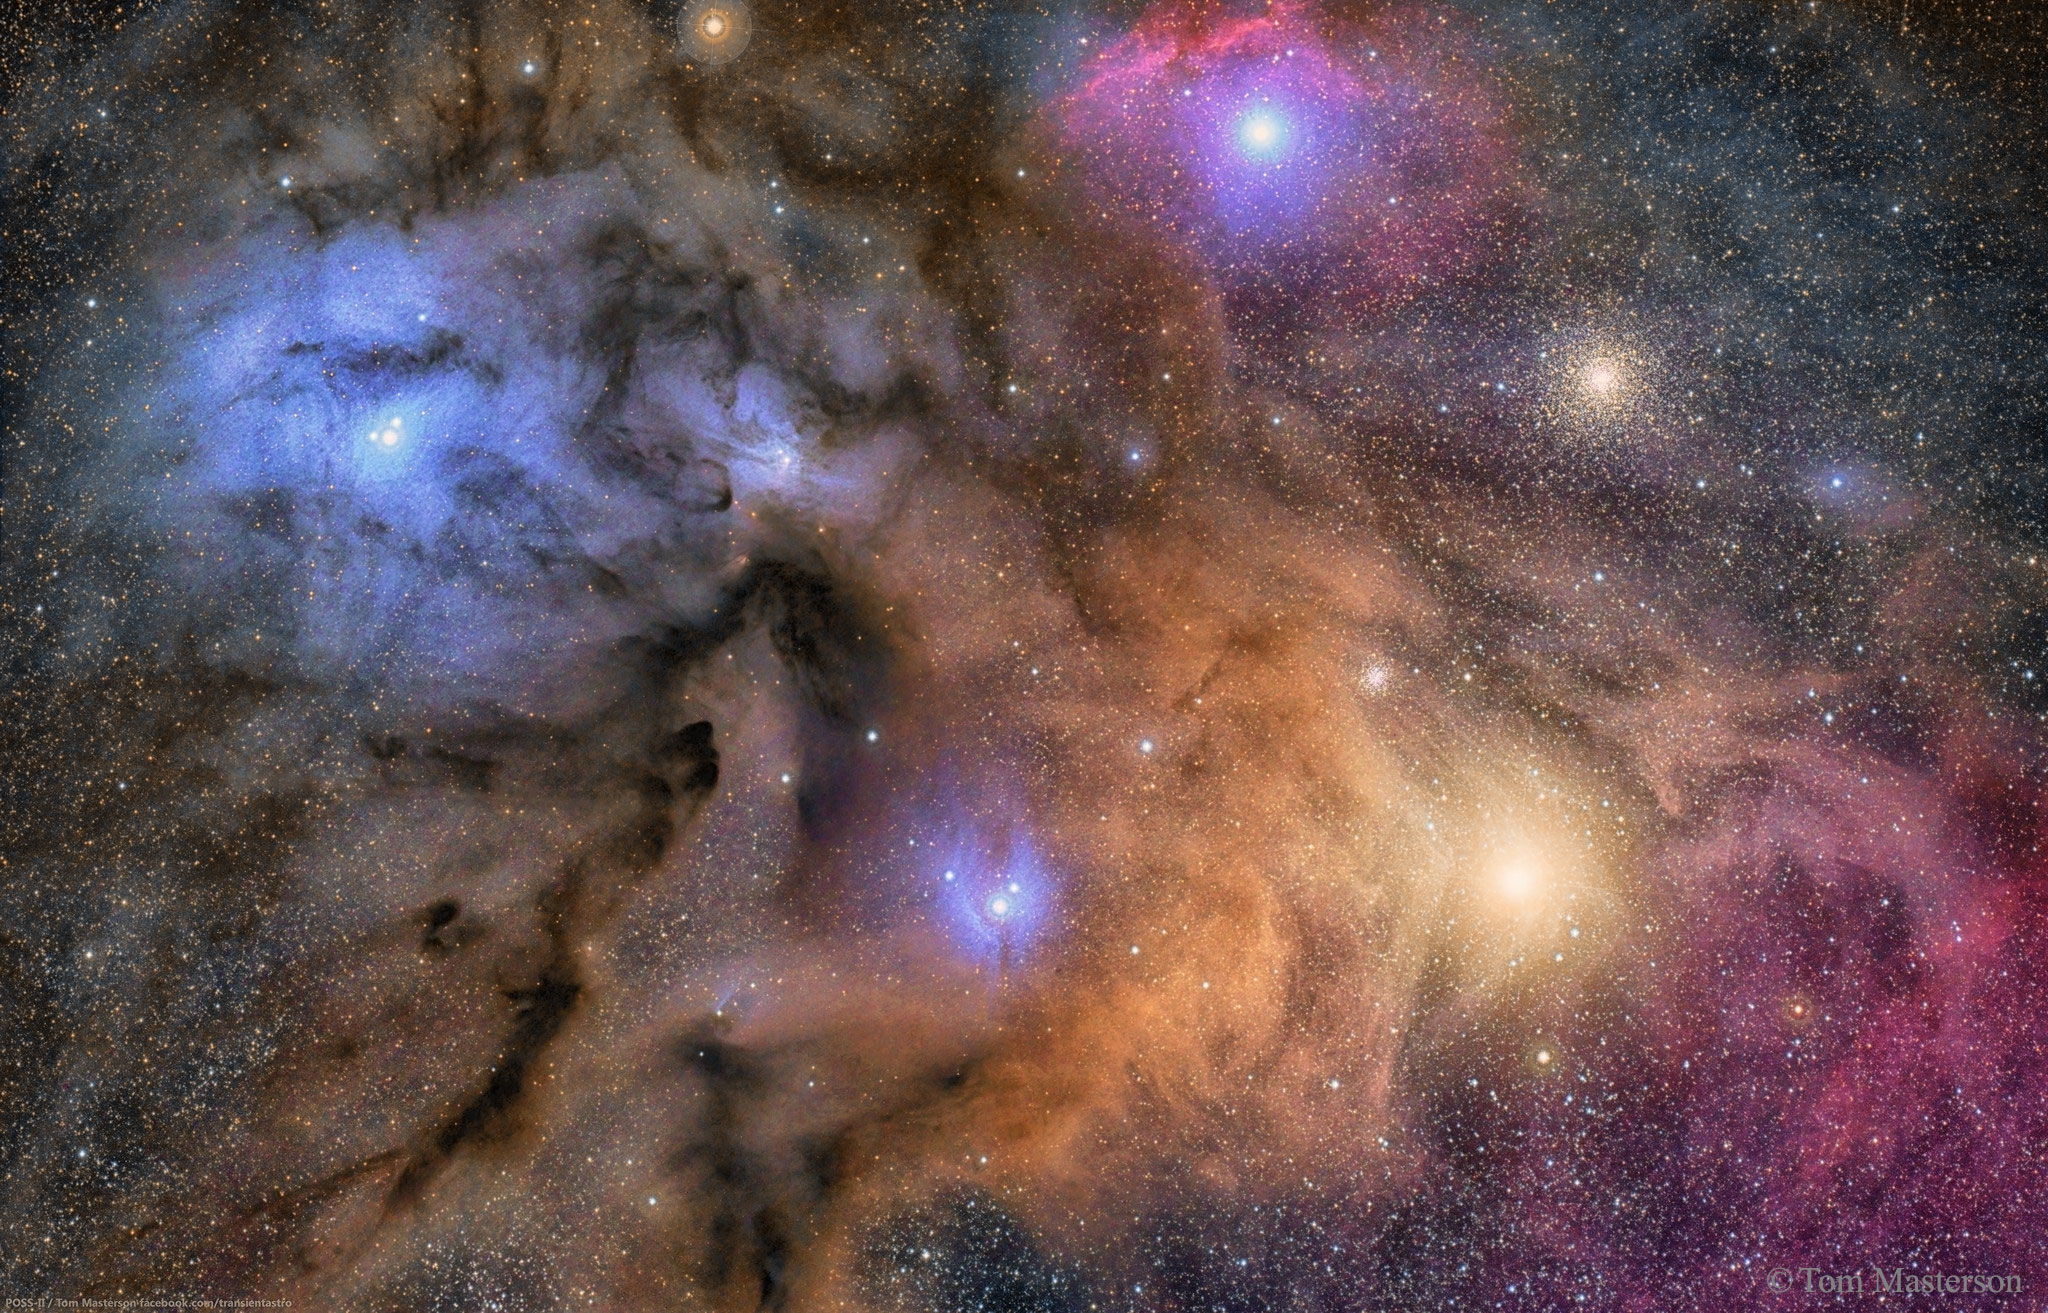 Apod 2016 July 5 The Colorful Clouds Of Rho Ophiuchi